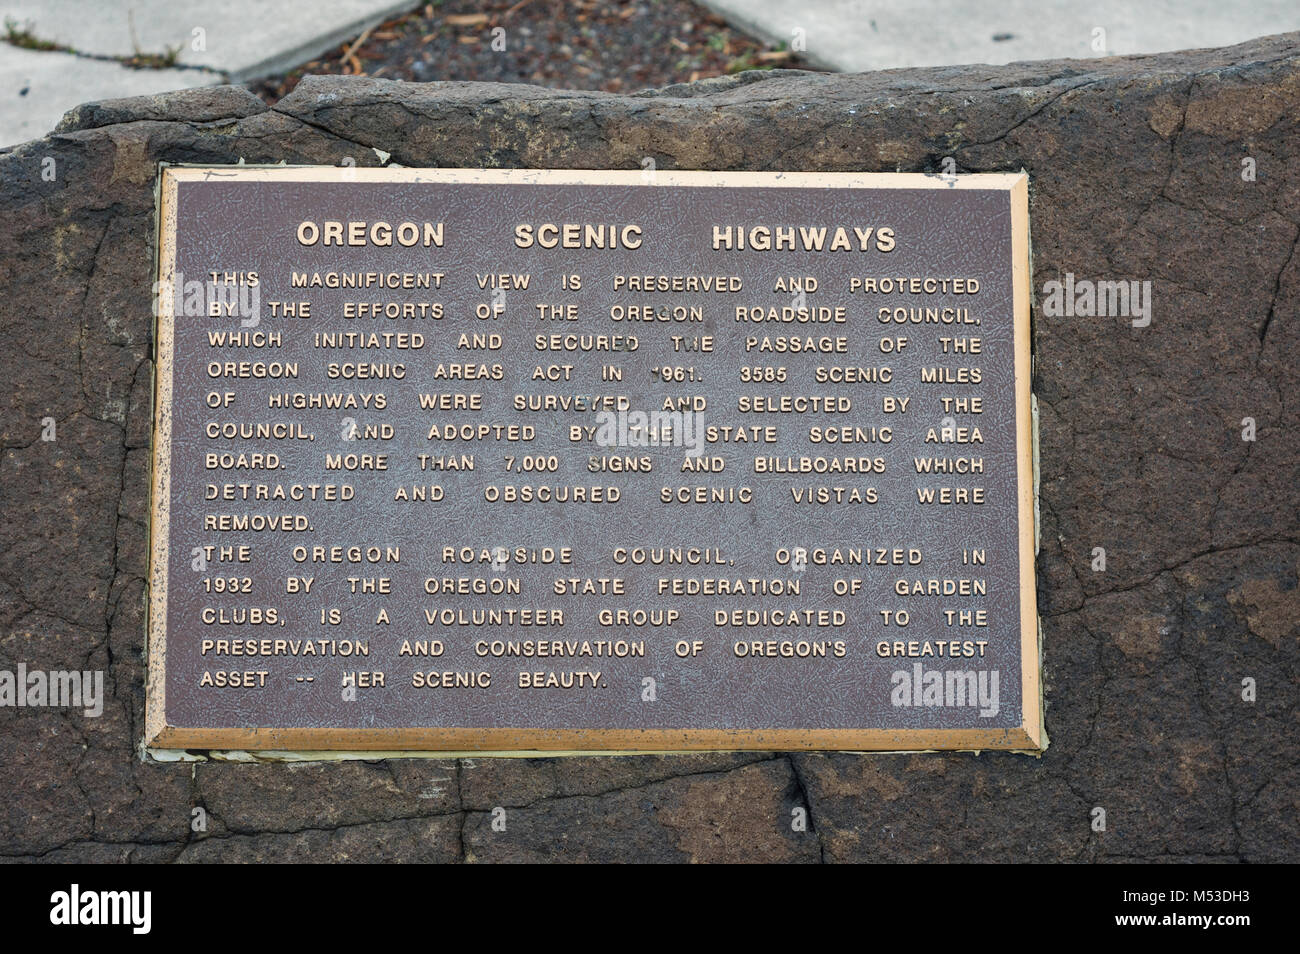 Oregon Scenic Highways plaque at a roadside overlook. - Stock Image